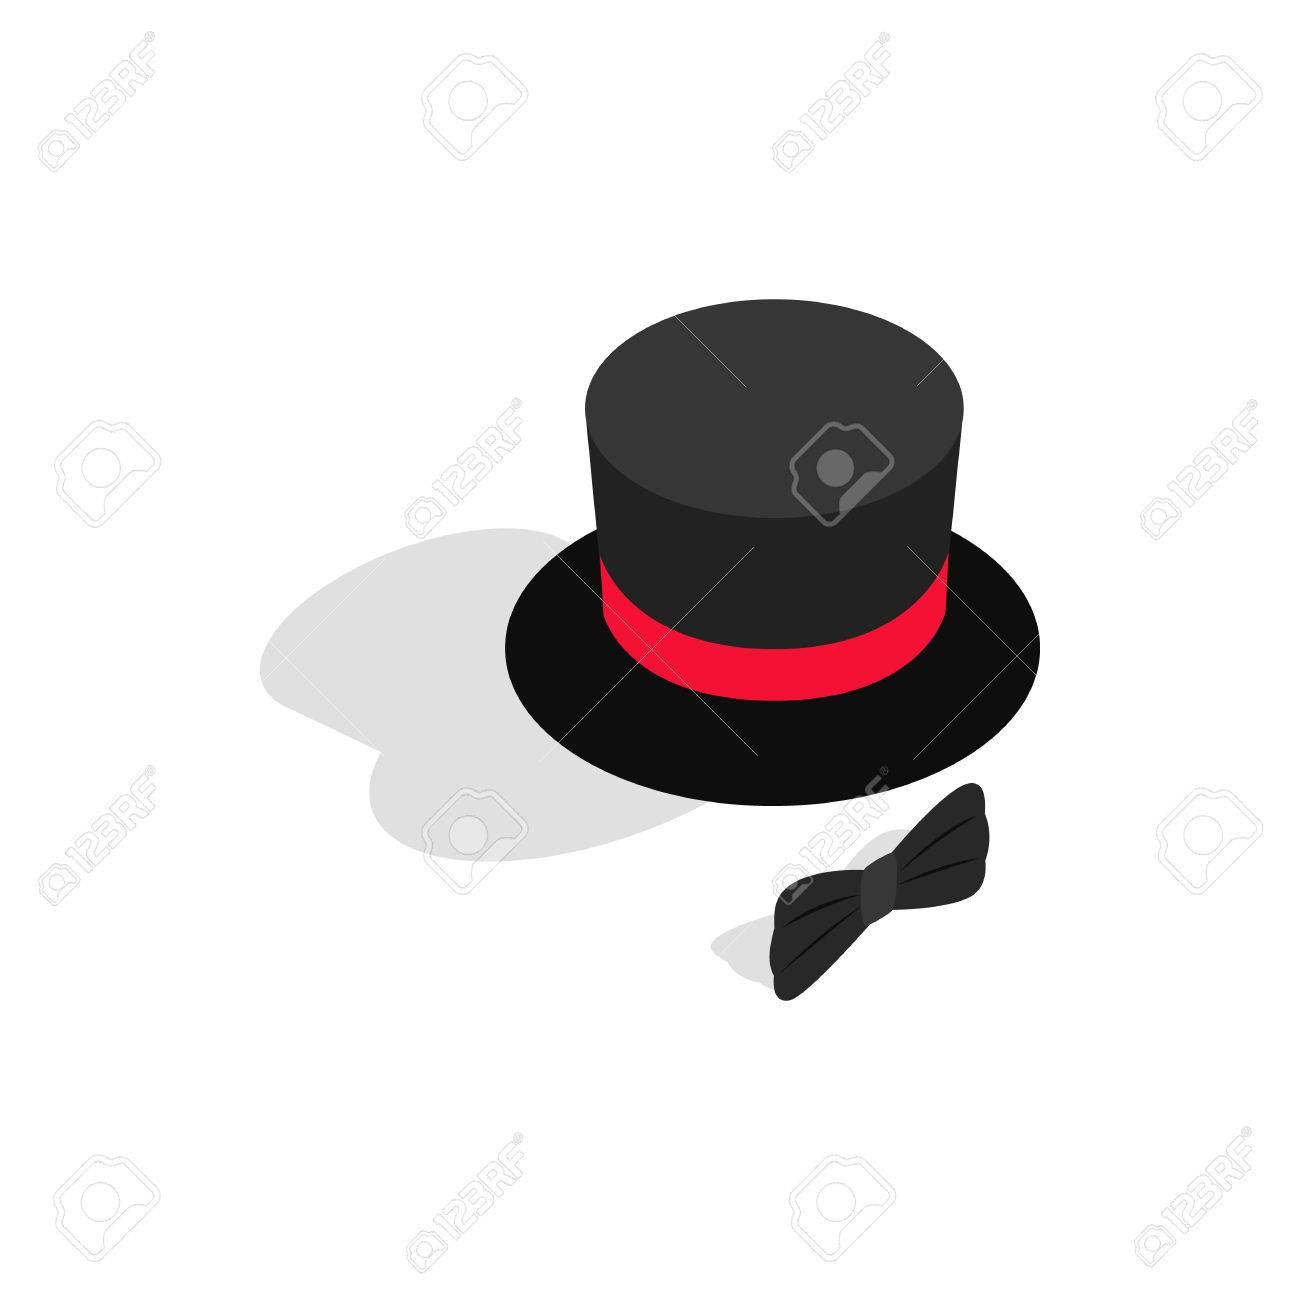 60d81d5d2db36 Black top hat and bow tie icon in isometric 3d style on a white background  Stock